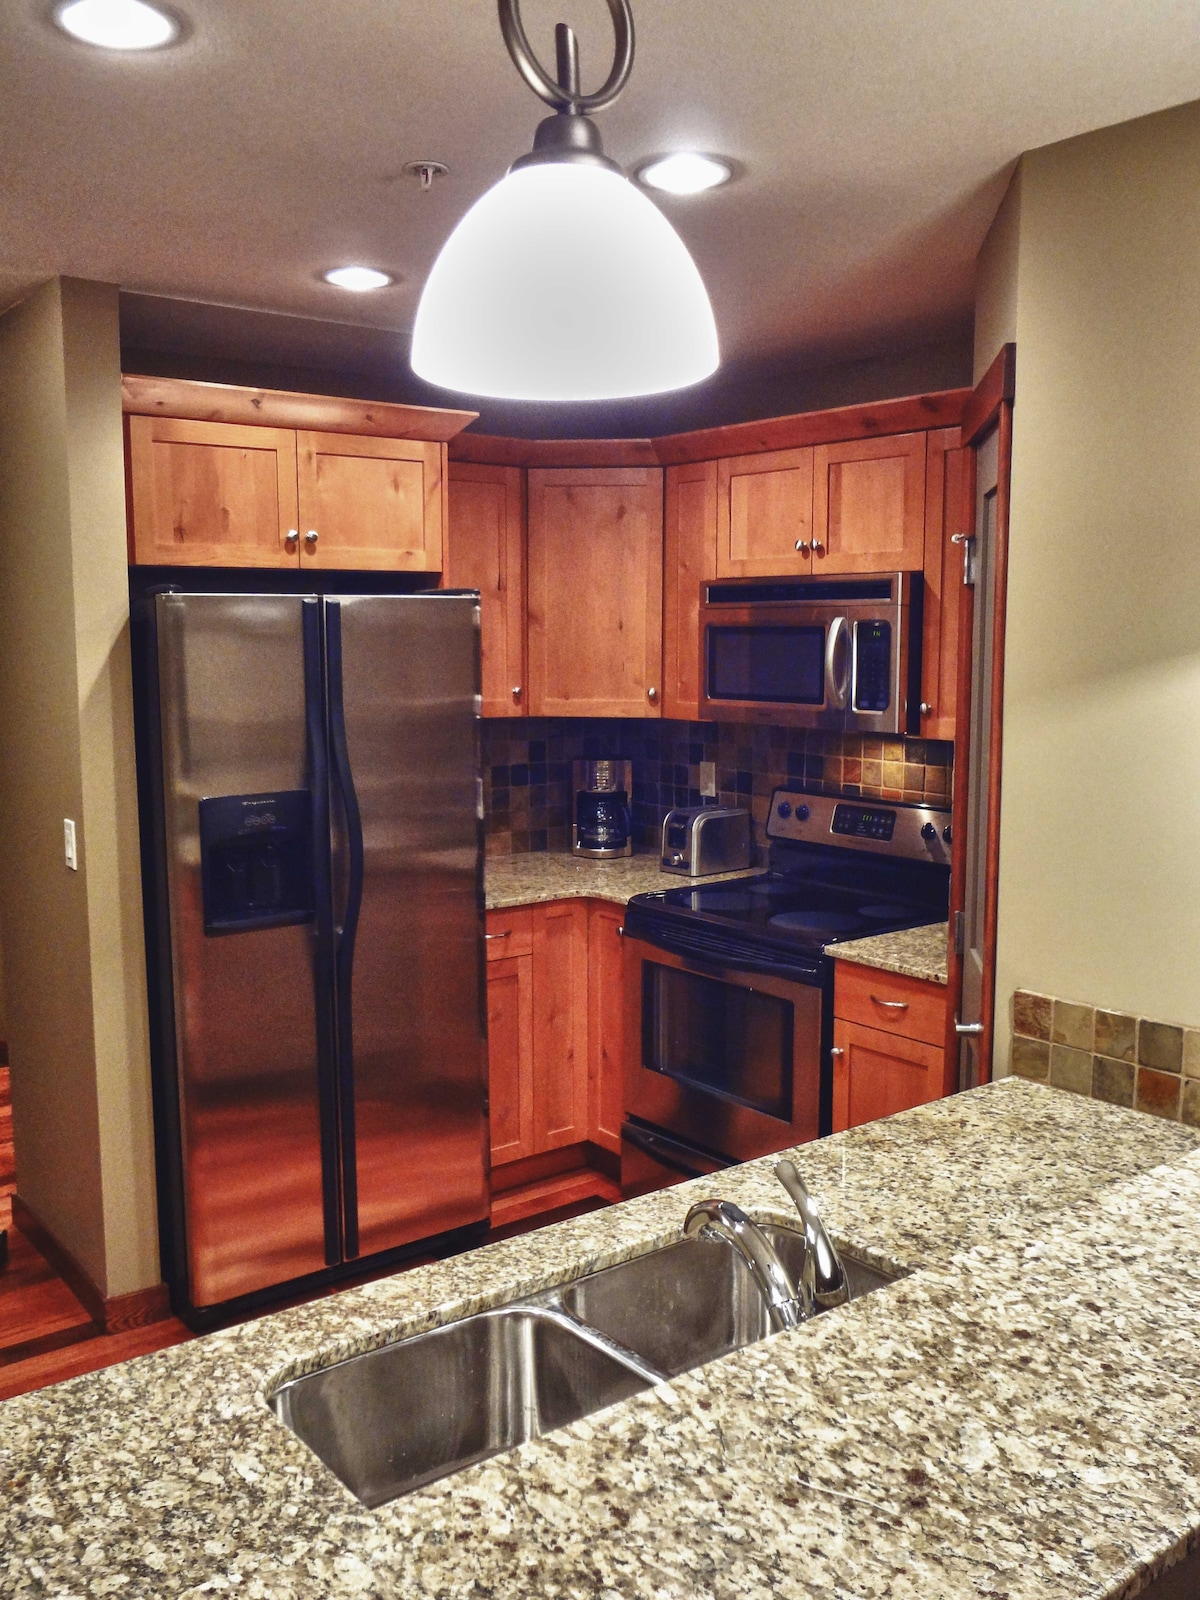 New stainless steel appliances, granite counter-tops, cookware and dining gear included.